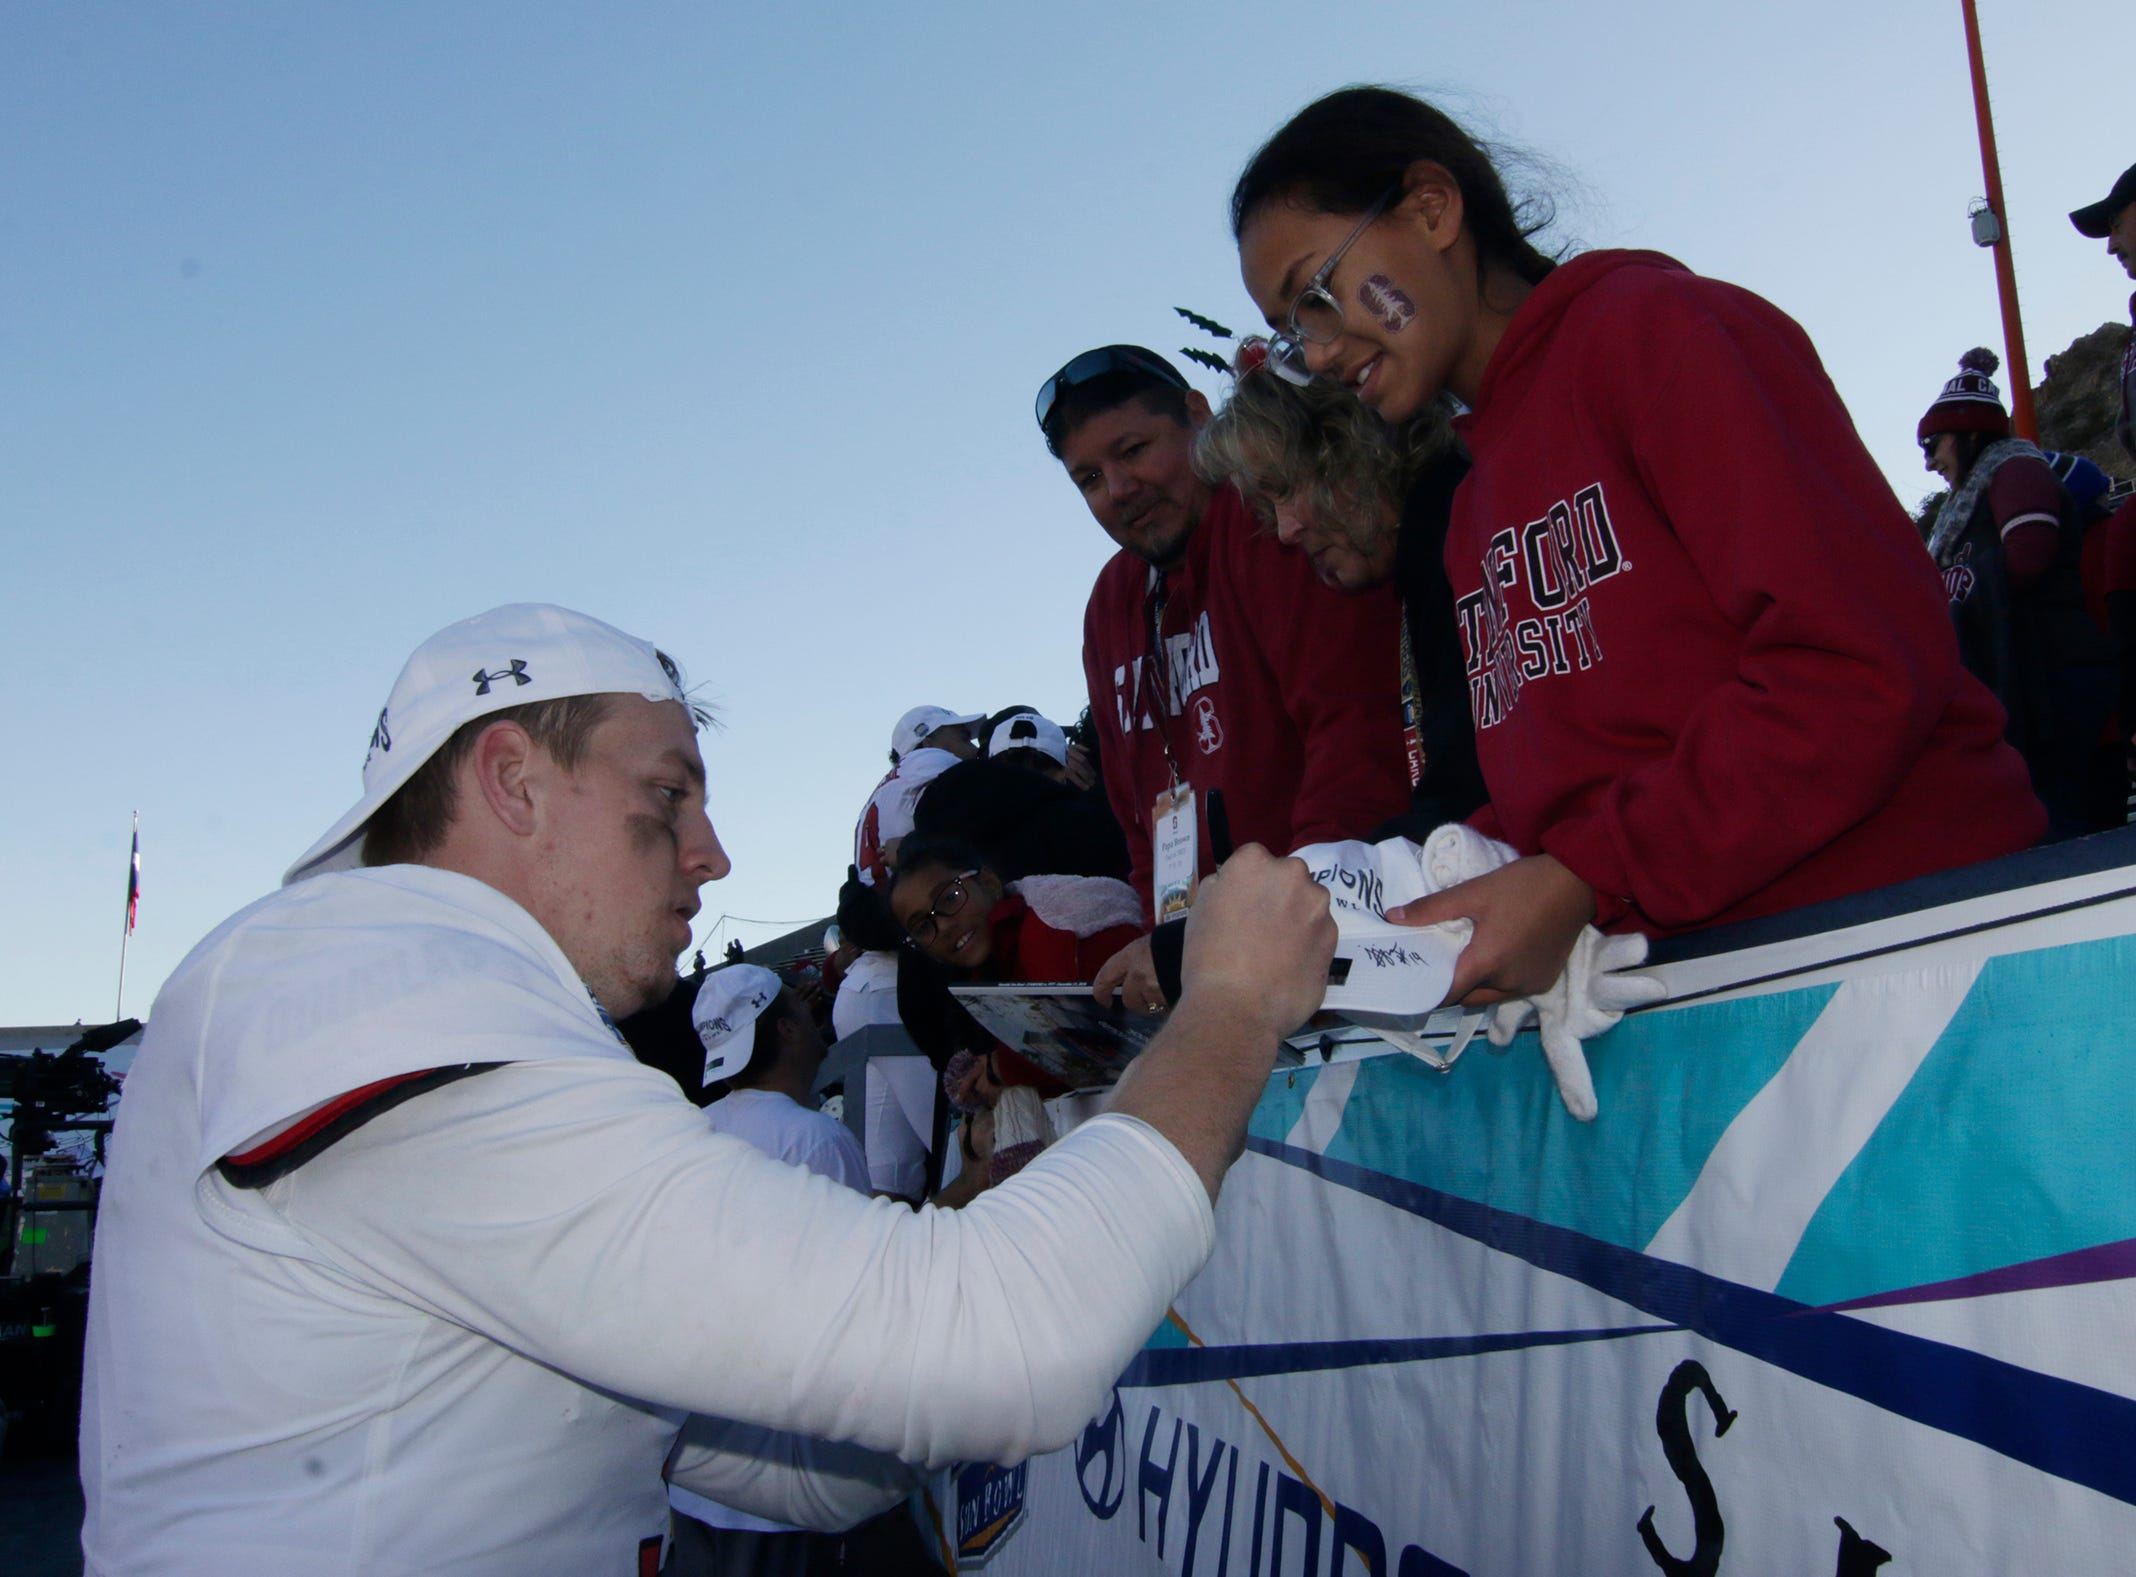 Stanford Cardinal quarterback K. J. Costello signs an autograph for a fan after he led his team to a come from behind win to beat Pitt 14-13 in the 85th Hyundai Sun Bowl.